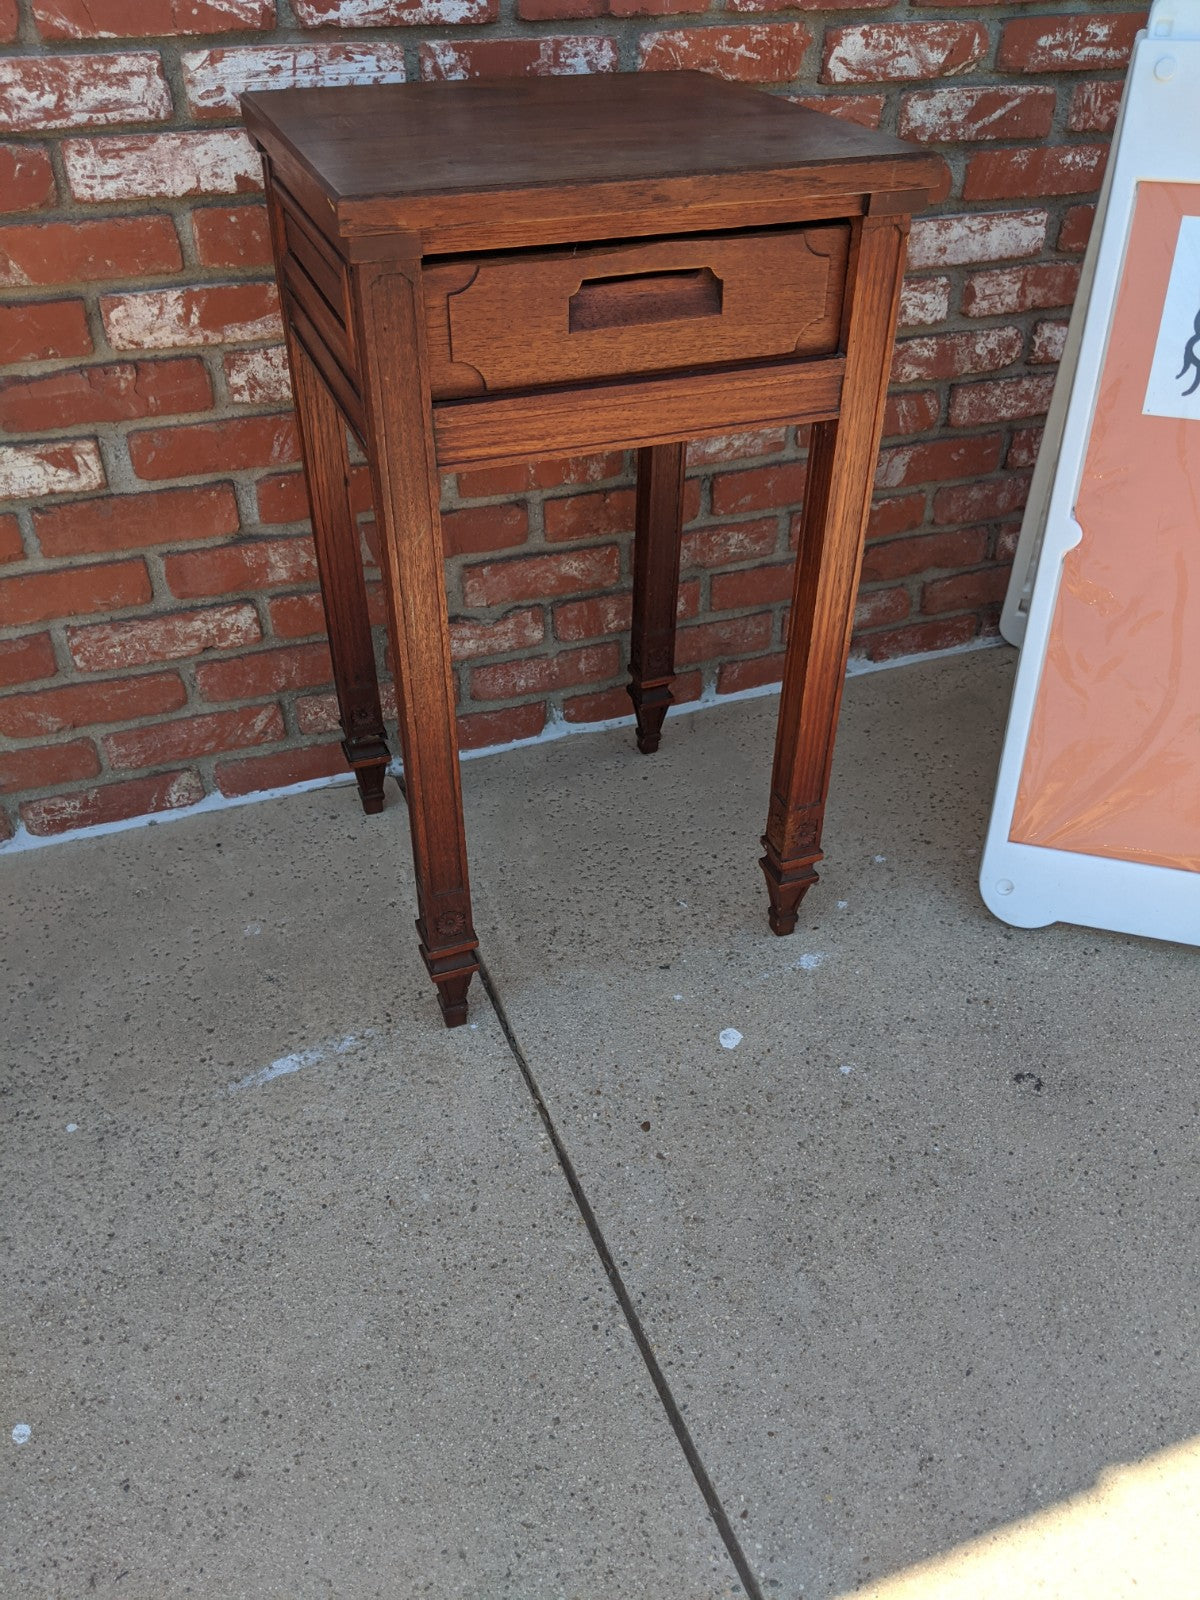 Vintage wooden side table / nightstand